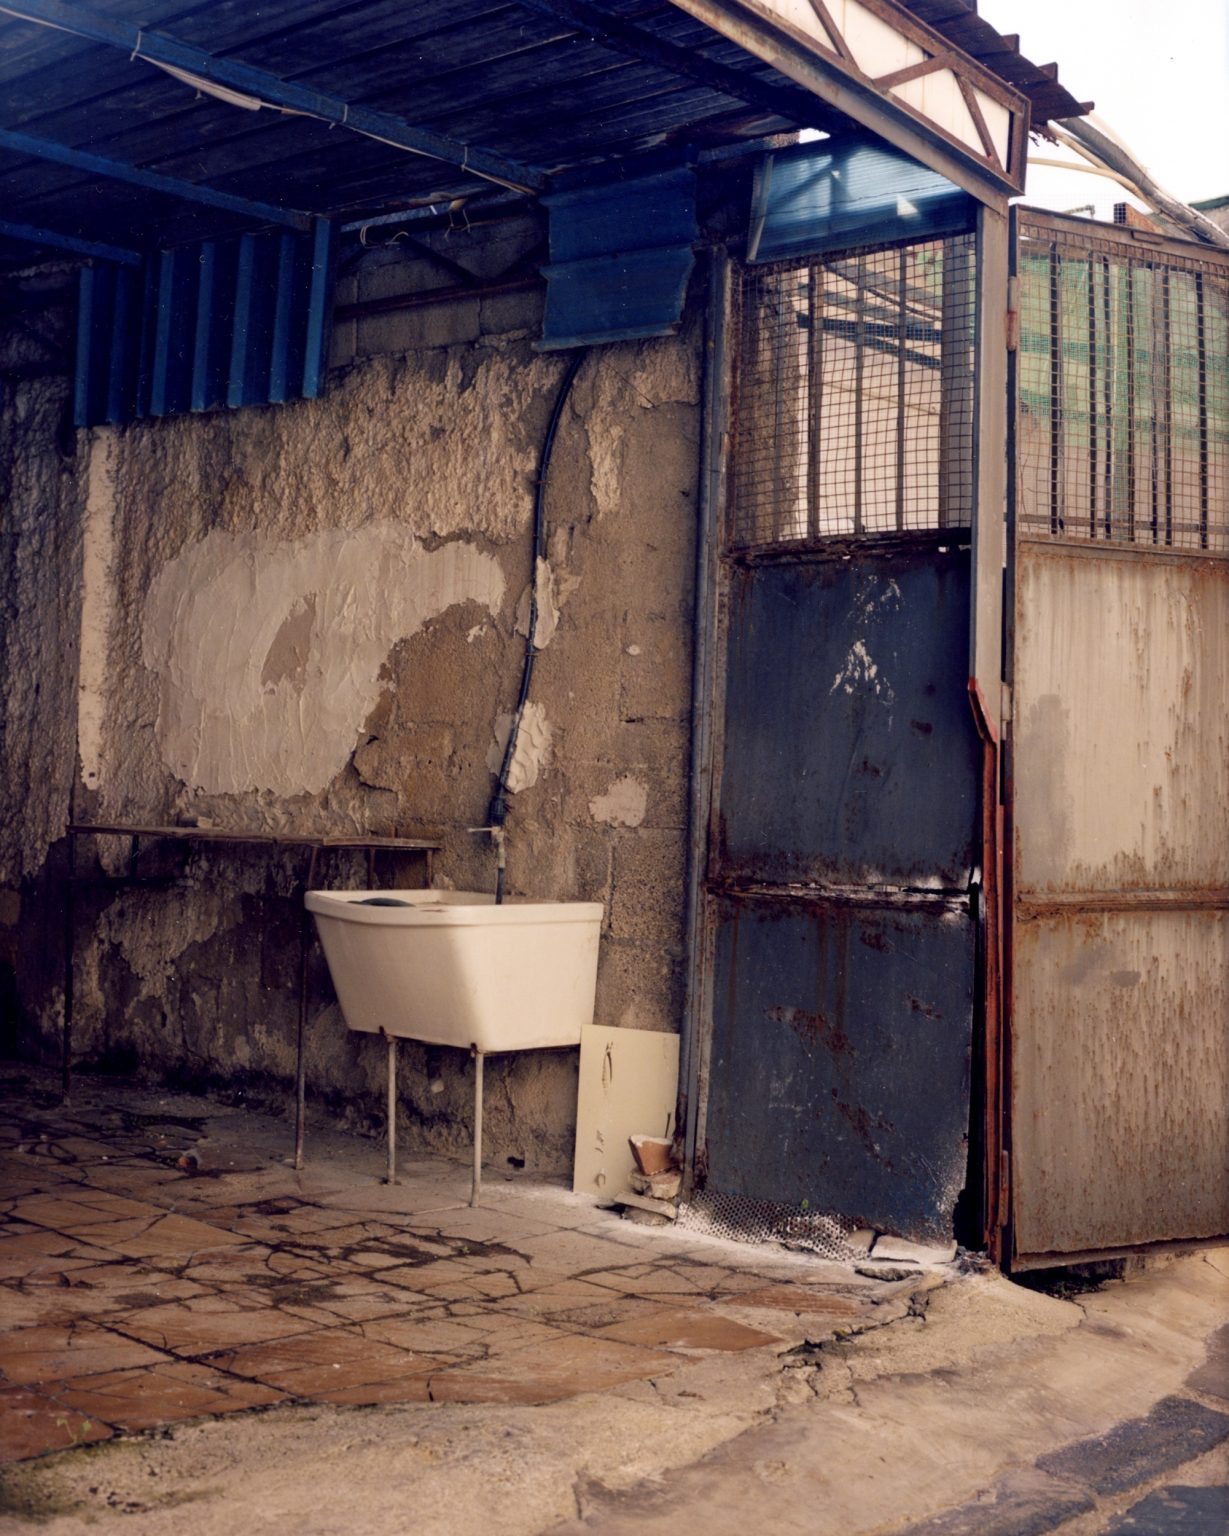 Wash sink in rural area. Province of Naples, 2020